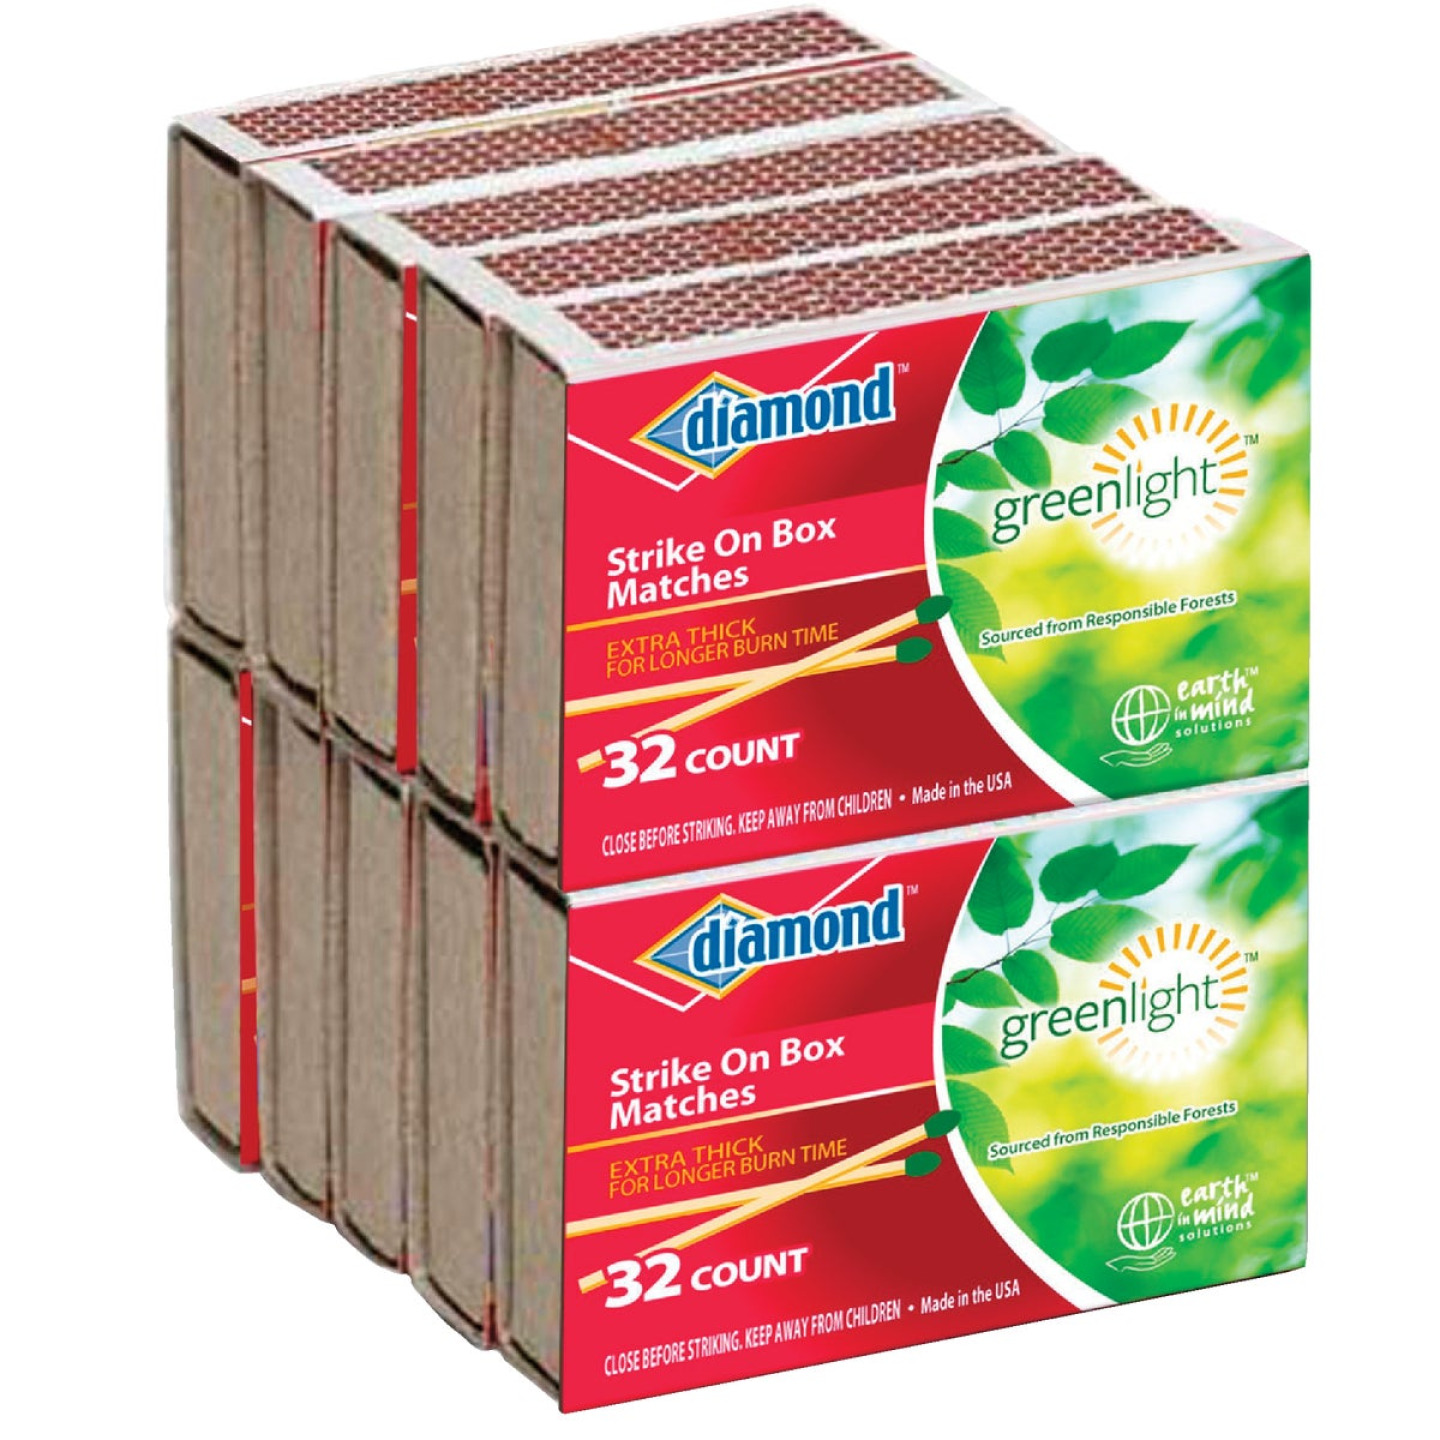 Diamond 2-3/8 In. 32-Count Strike on Box Pocket Matches (10-Pack) Image 1